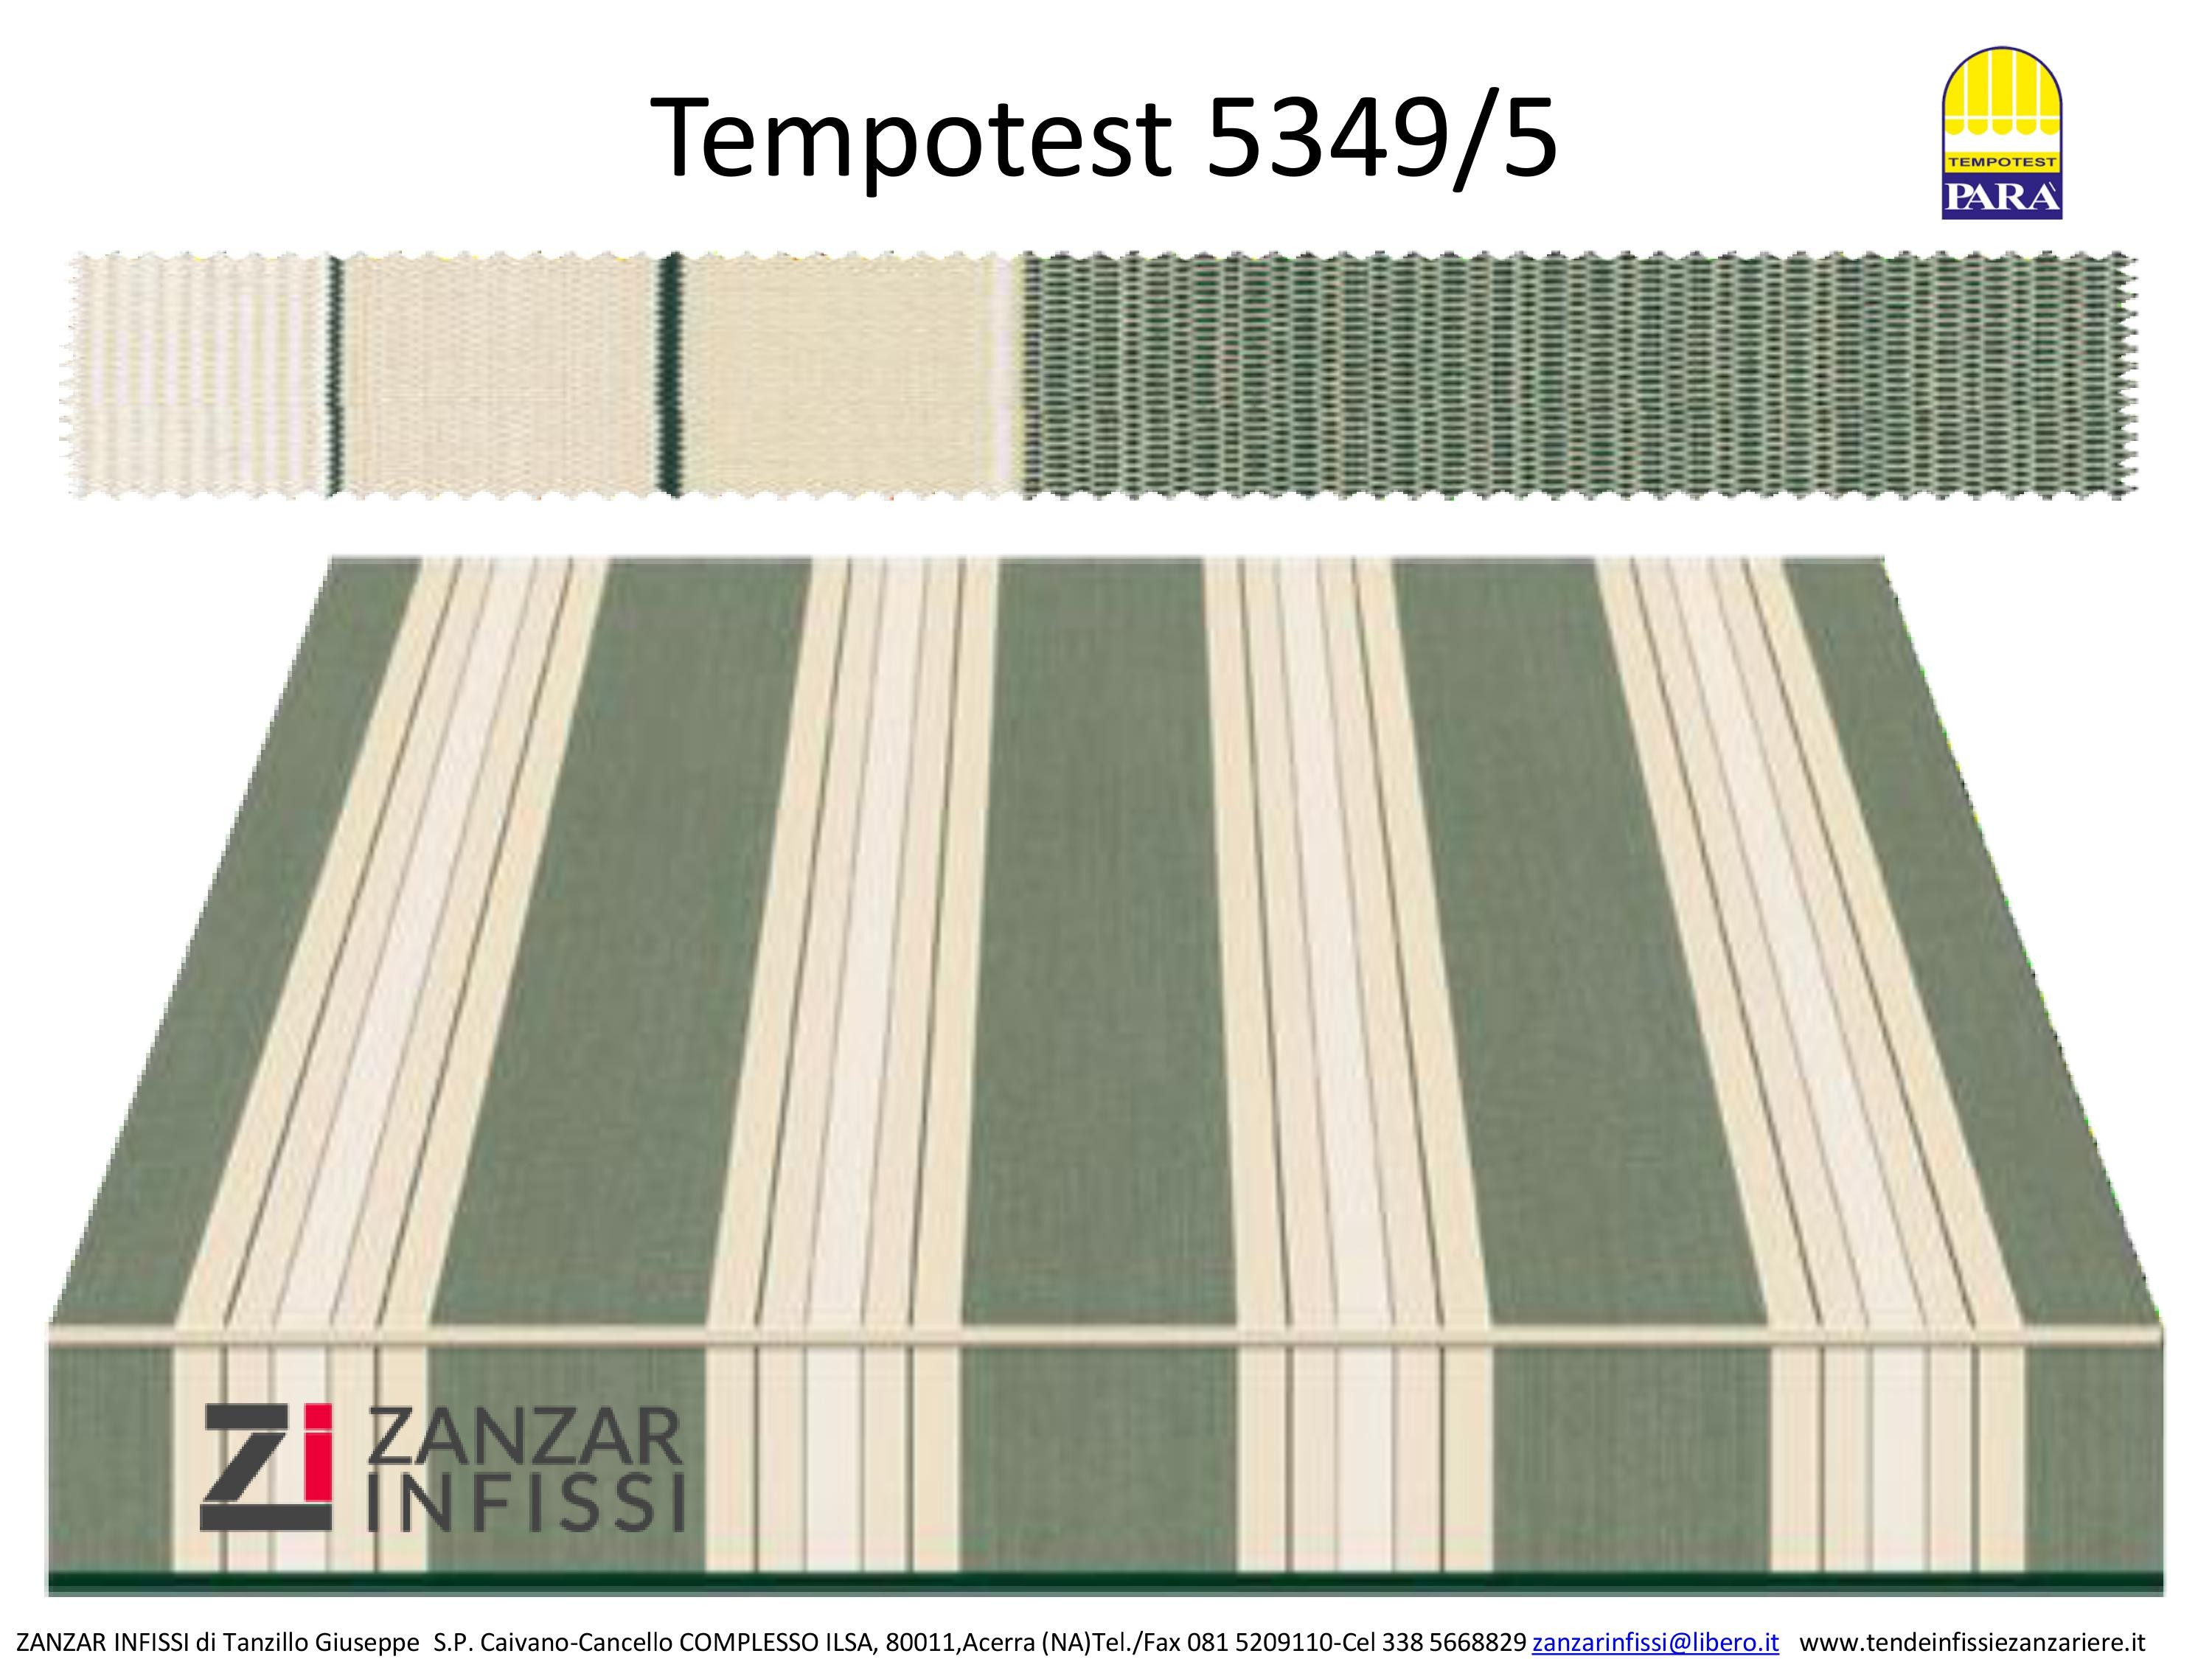 Tempotest 5349/5